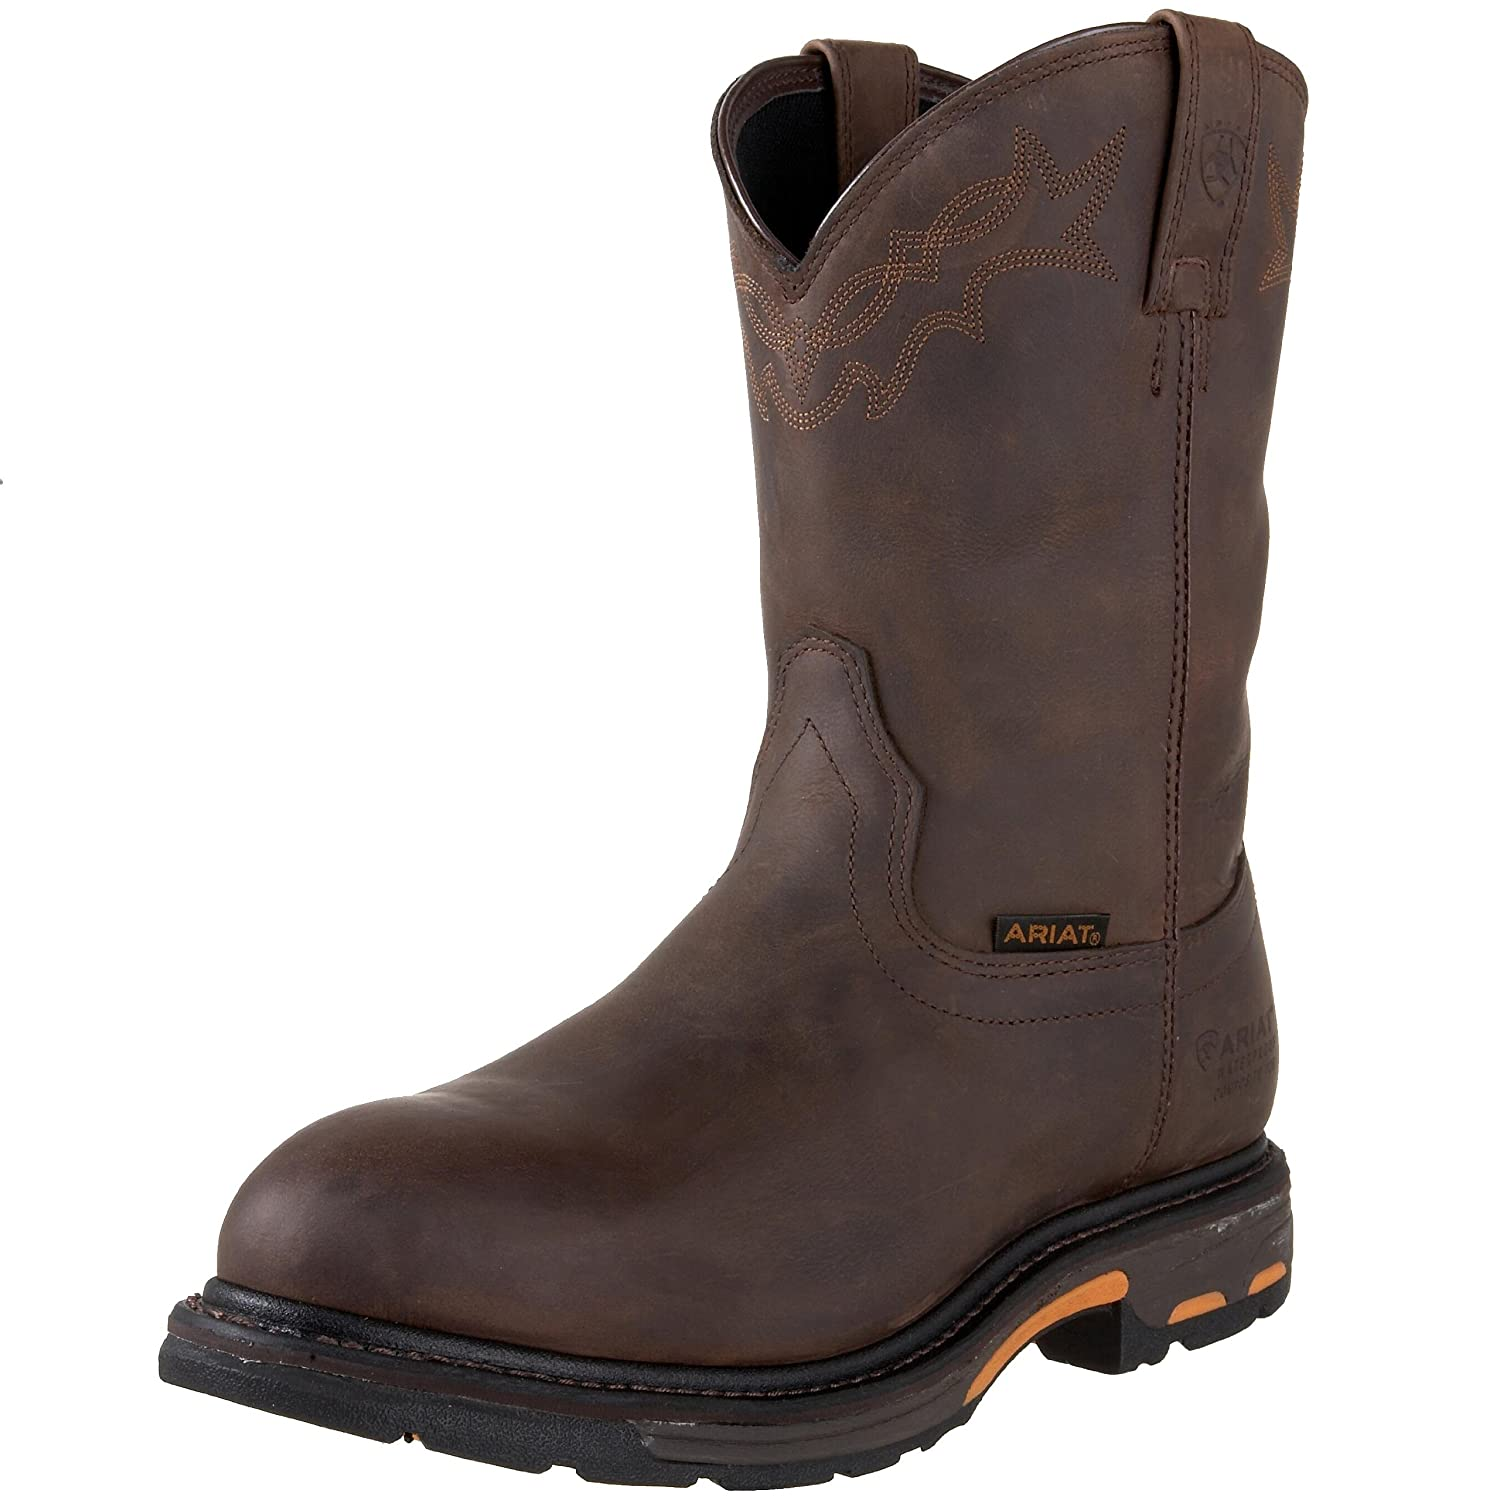 Ariat Men's Workhog Pull-on H2O Composite Toe Work Stiefel, Oily Distressed braun, 9.5 D US